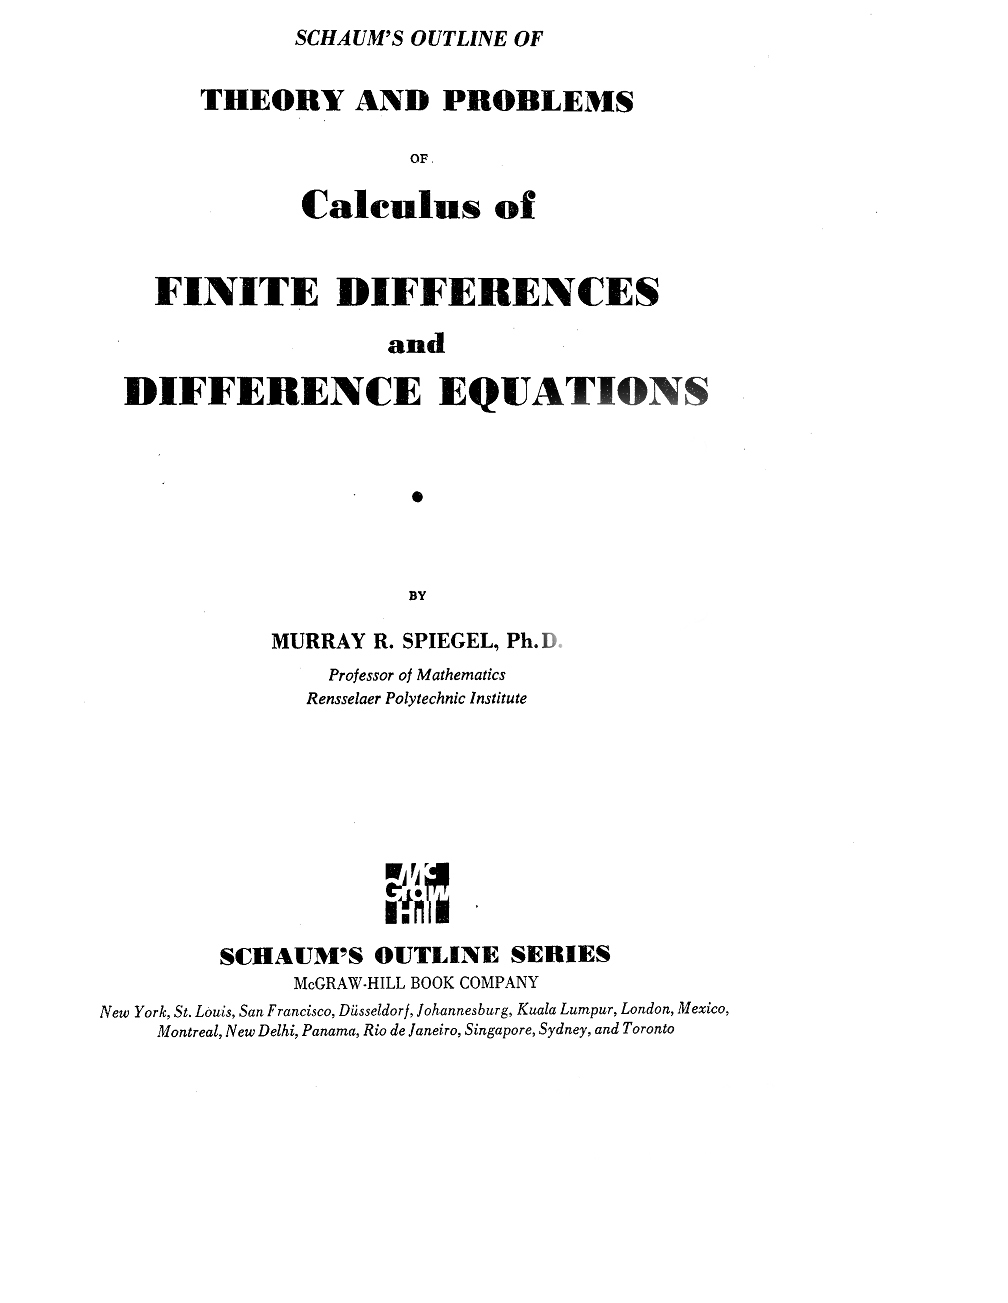 Thomas Calculus 12th Edition Solutions Manual. Schaum's Outline of Theory  and Problems of Calculus of Finite Difference and Difference Equations by  Murray